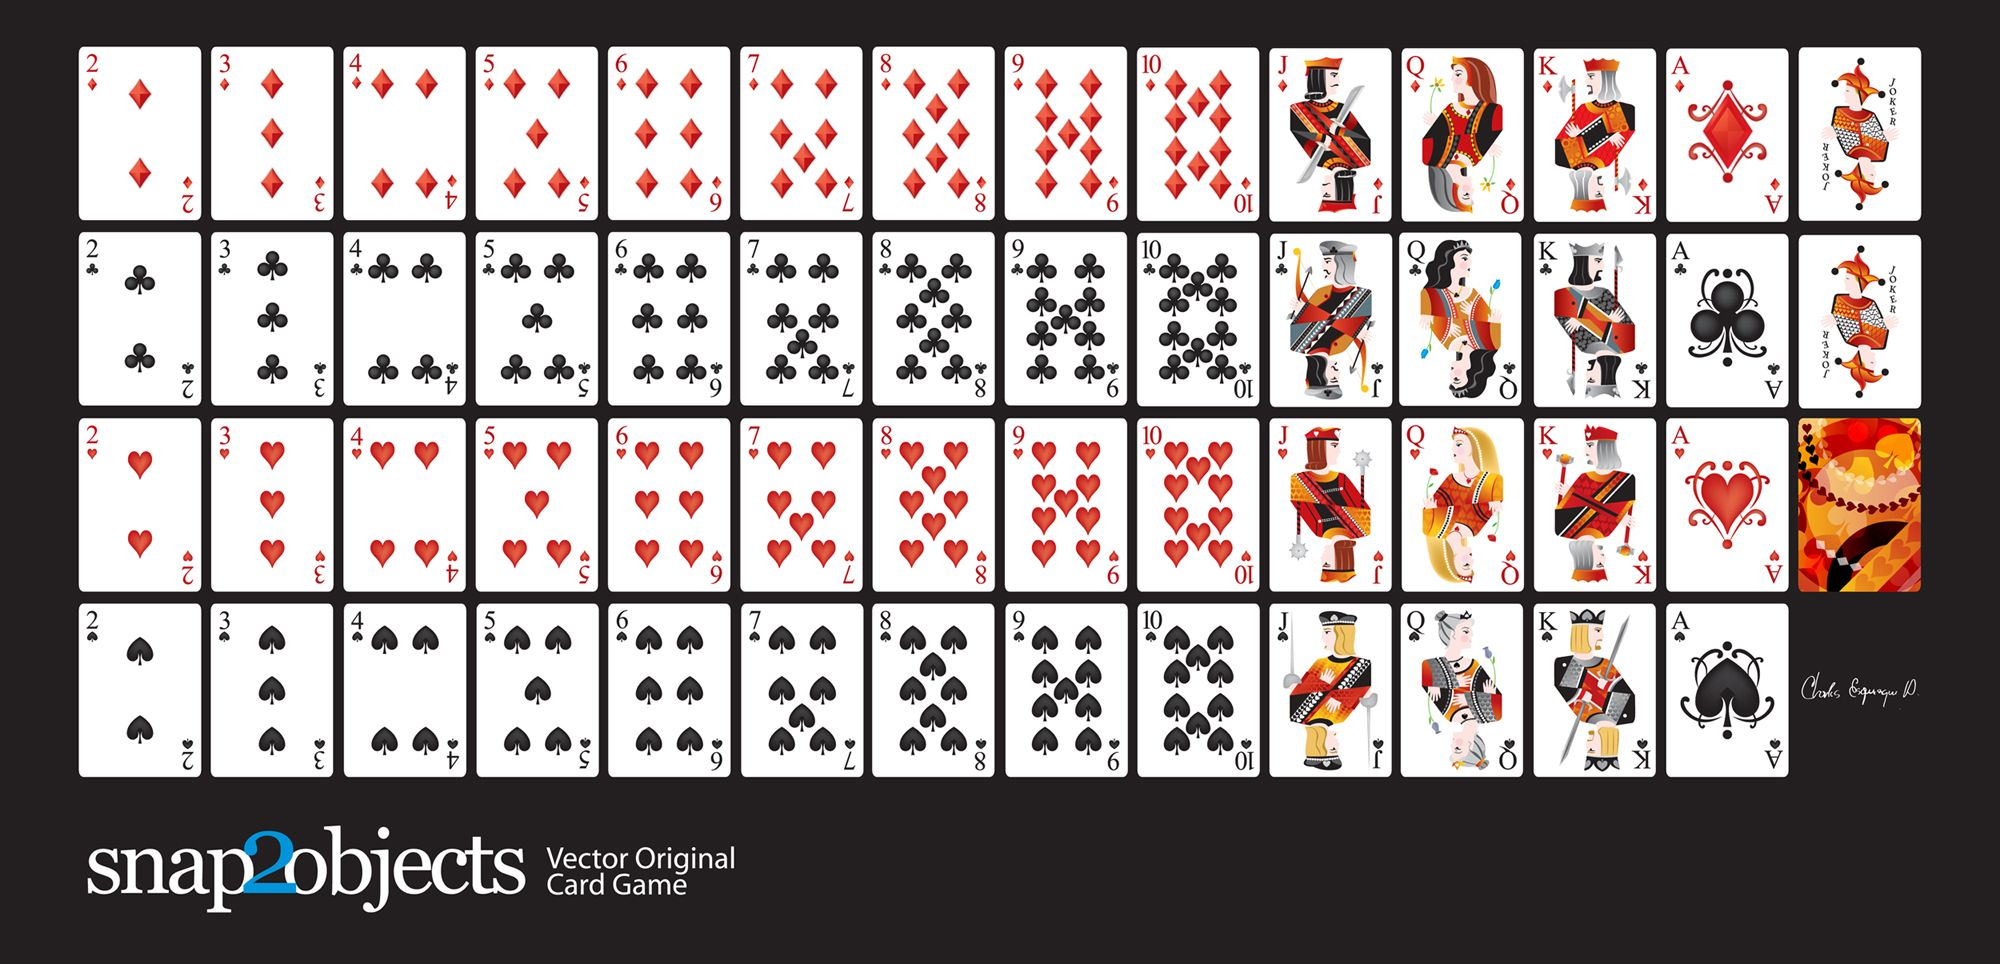 How To Play 21 With Deck Of Cards - arxiusarquitectura Pertaining To Deck Of Cards Template